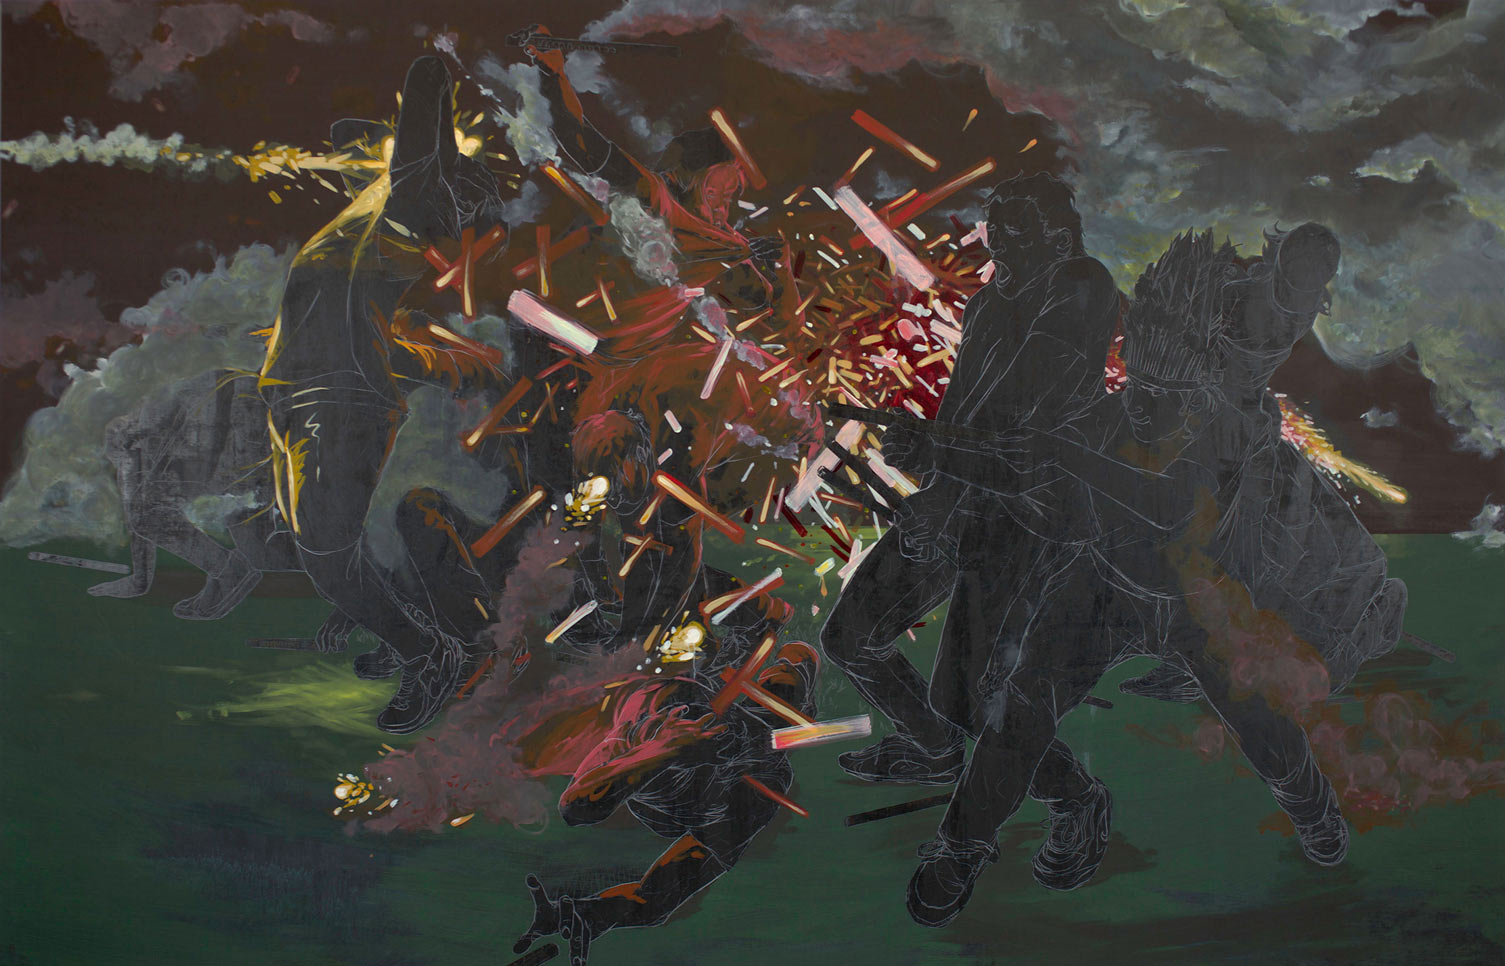 Chalkboard Style Paintings by Maximilian Toth: mtoth-1920-2012-roman-candle-battle.jpg